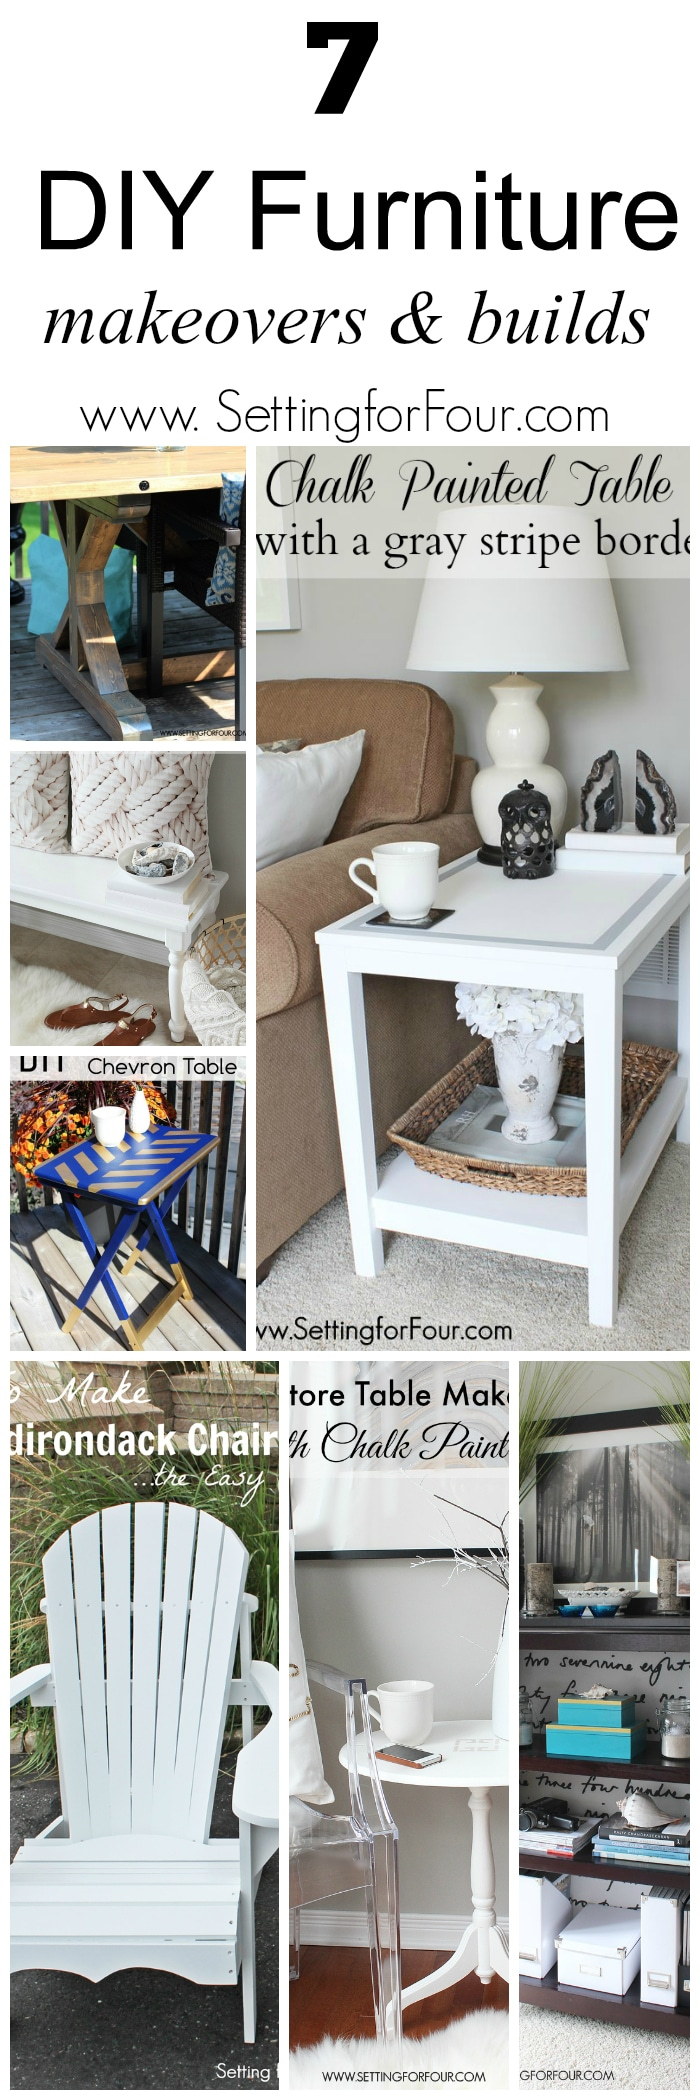 Diy Furniture Makeovers And Builds Setting For Four